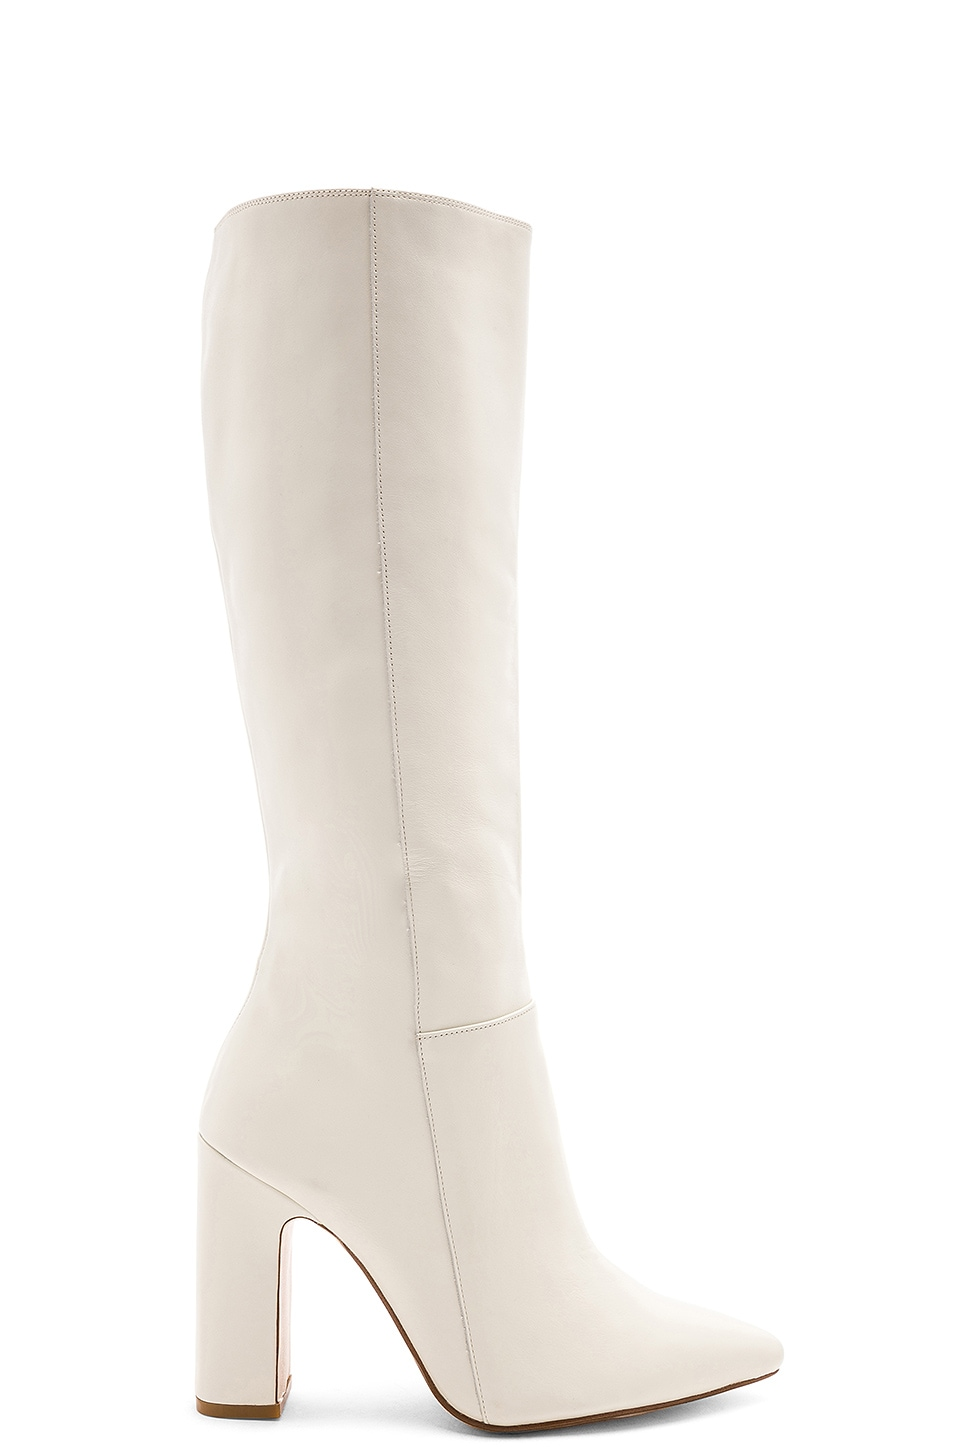 RAYE Maple Boot in White